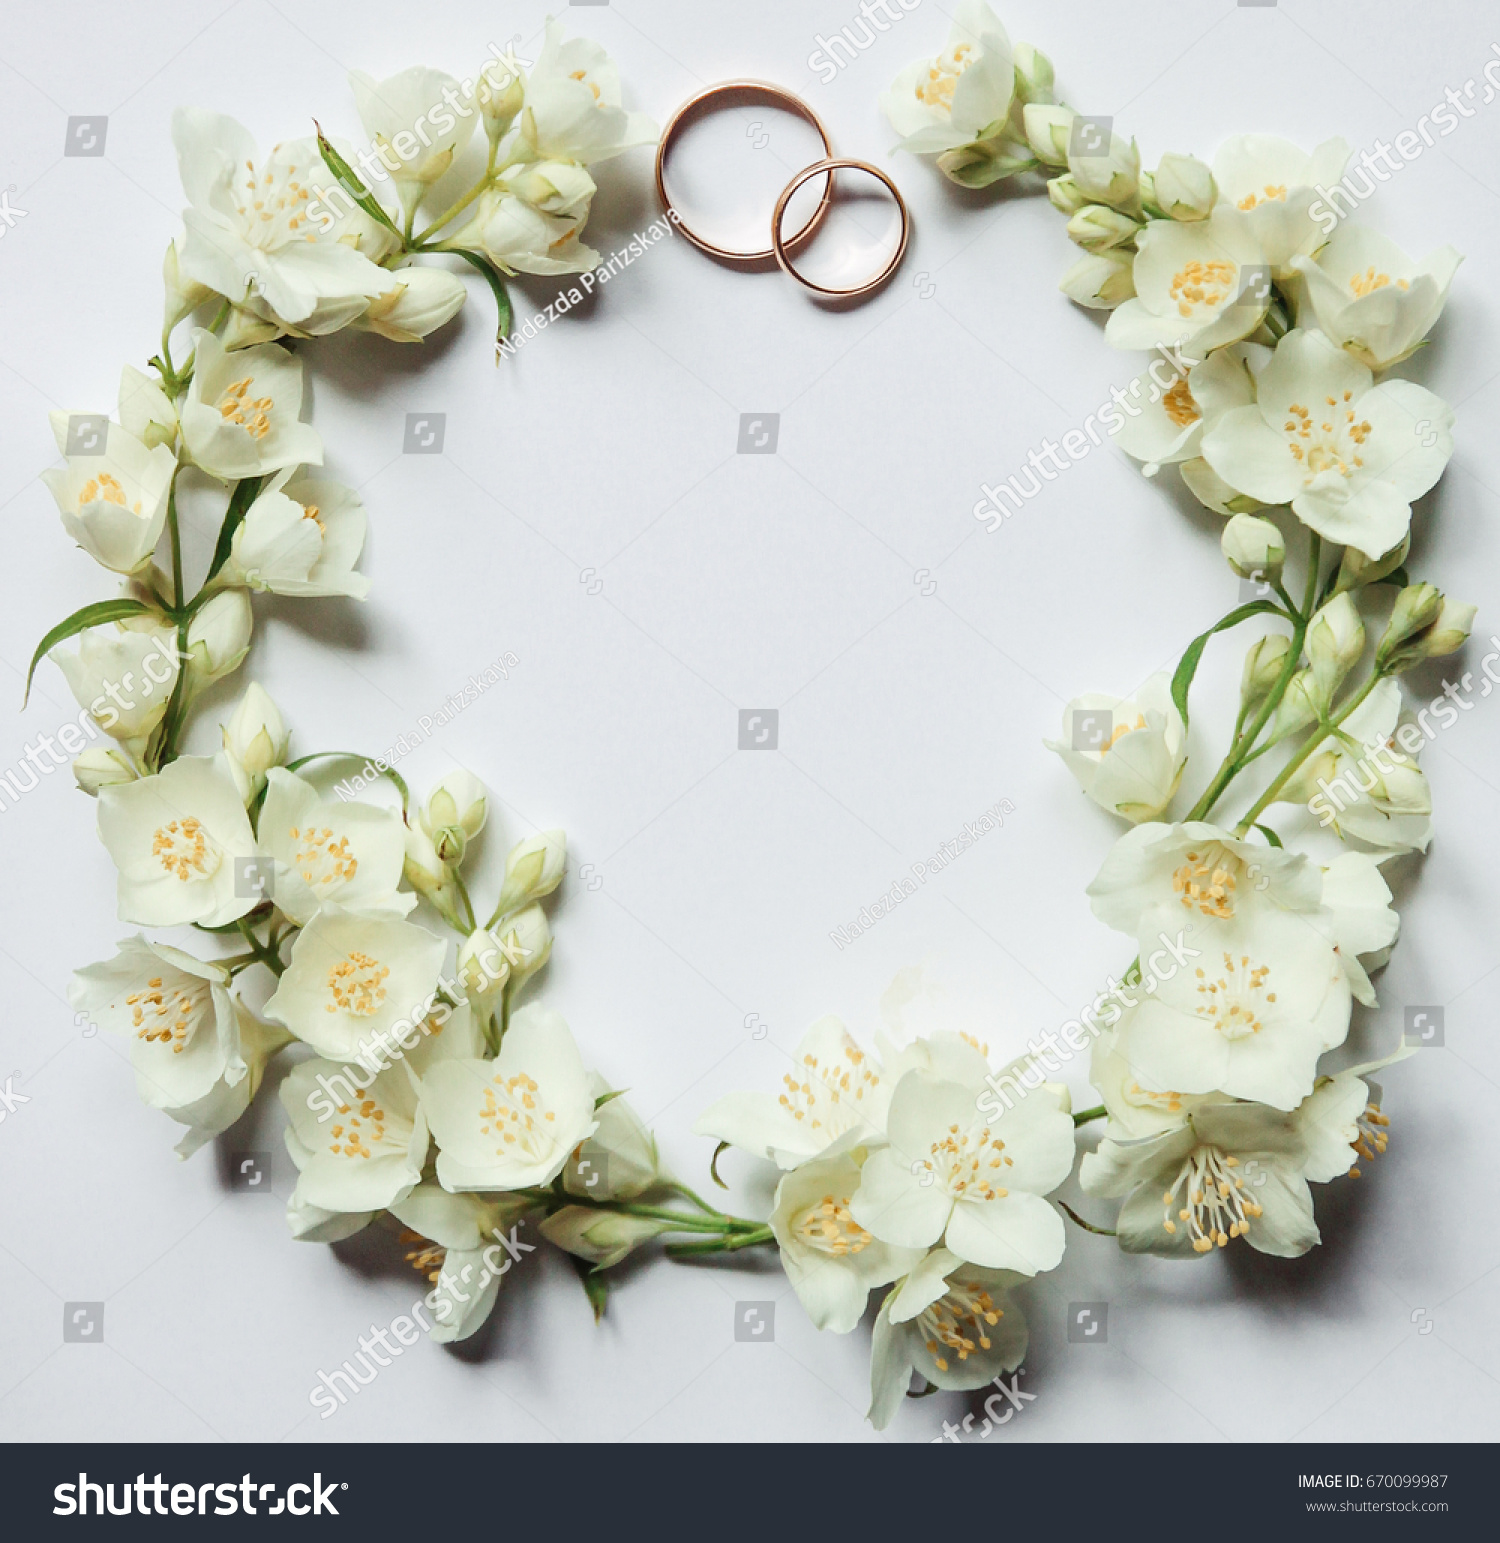 Gold wedding rings on background jasmine stock photo edit now gold wedding rings on a background of jasmine flowers jasmine flowers in the form of izmirmasajfo